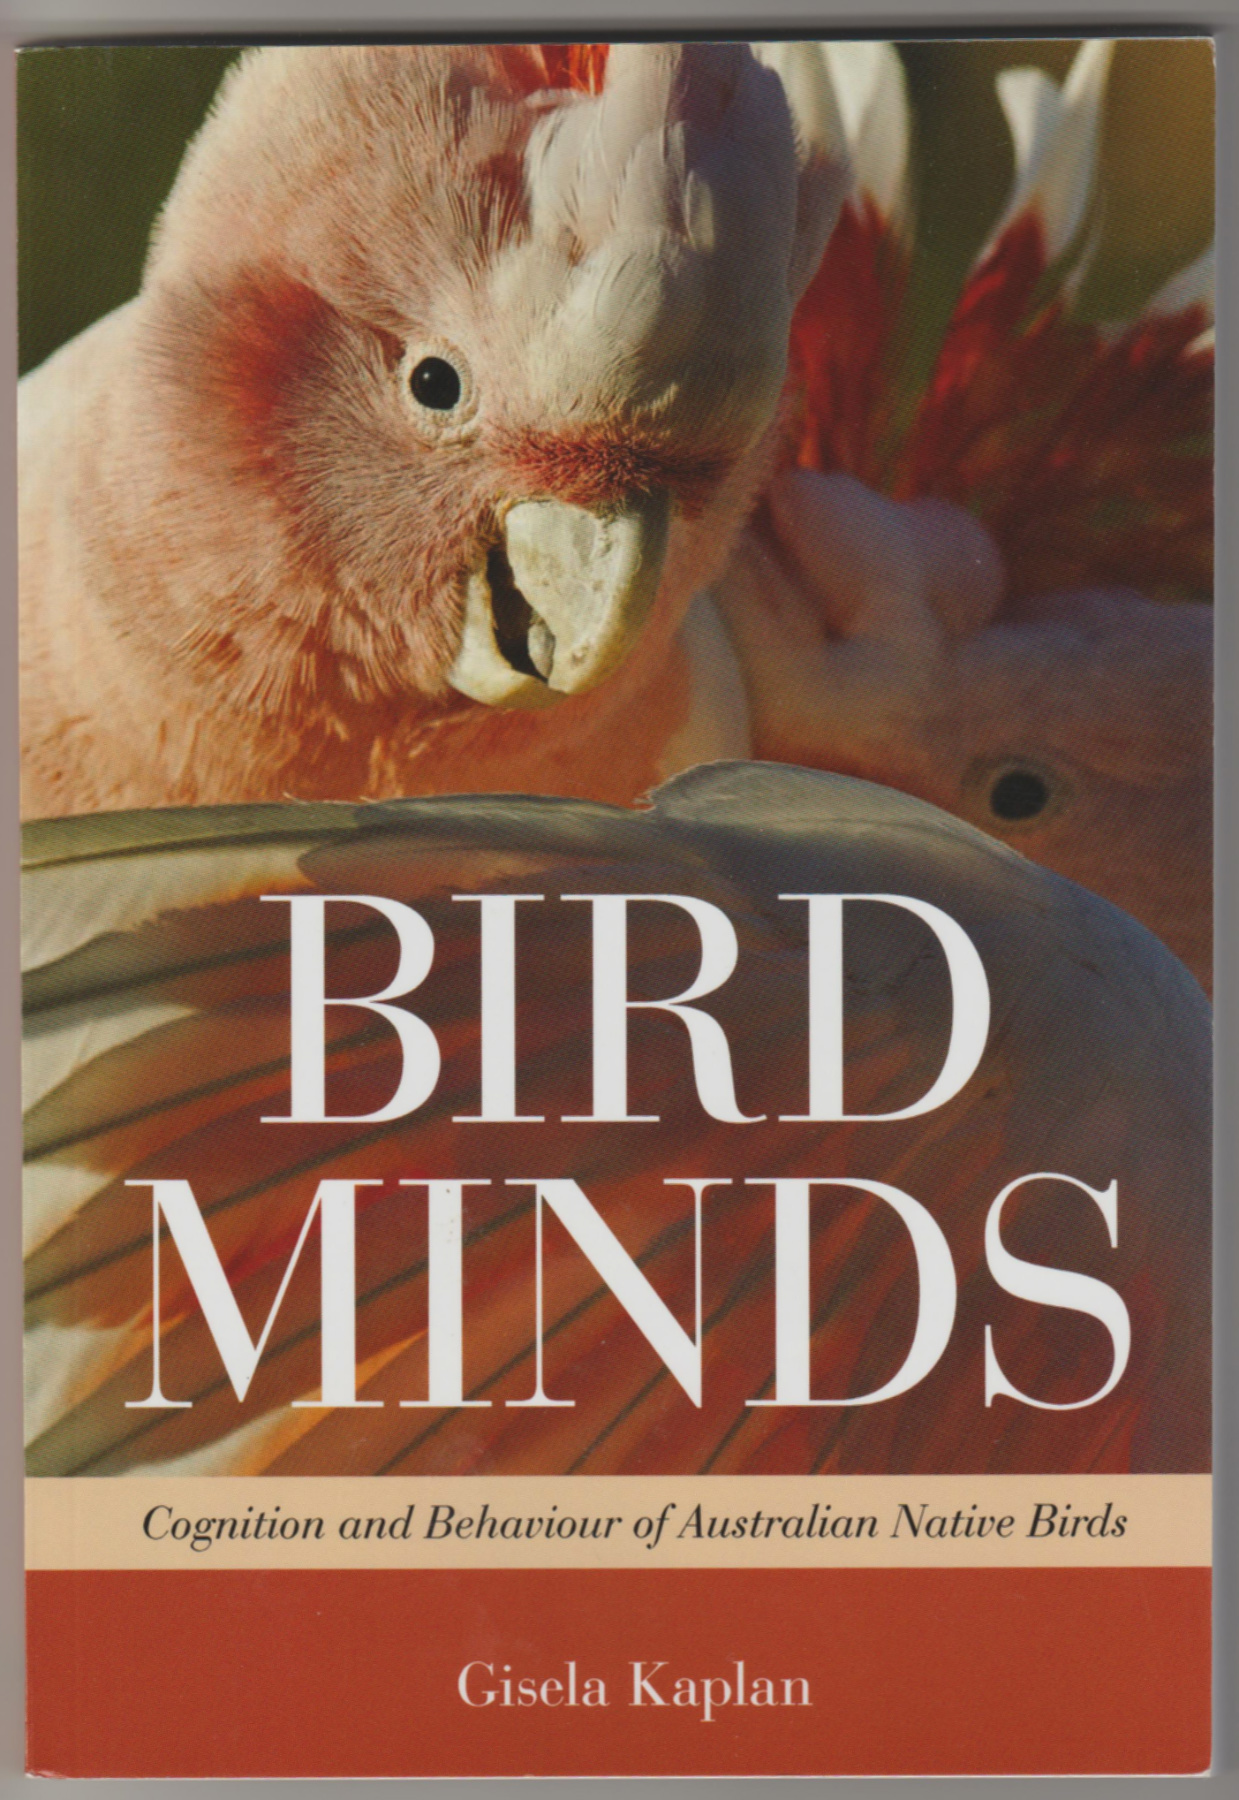 Image for BIRD MINDS: Cognition and Behaviour of Australian Native Birds